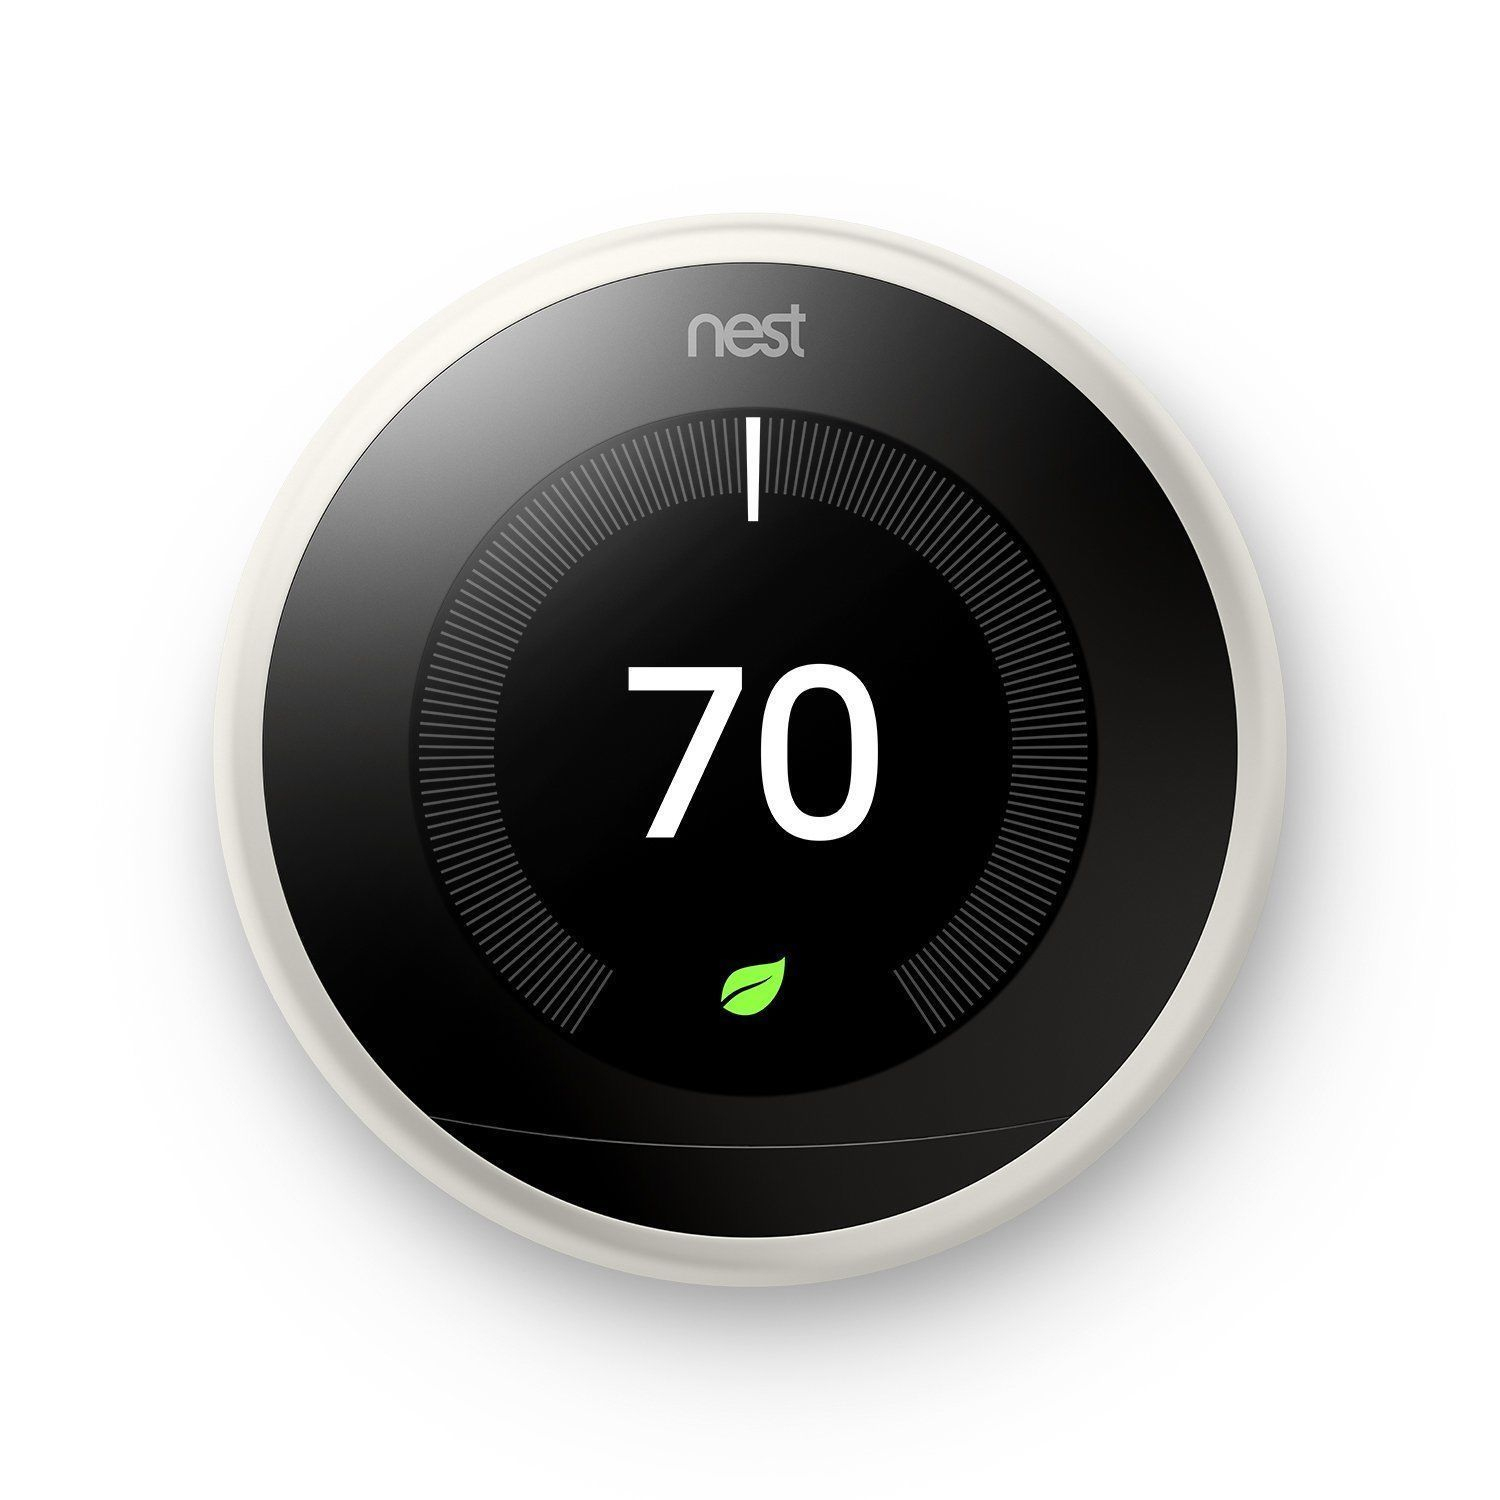 Nest T3016Us 3Rd Generation Learning Programmable Thermostat - Black - Wiring Diagram Nest A0013 Black Thermostat